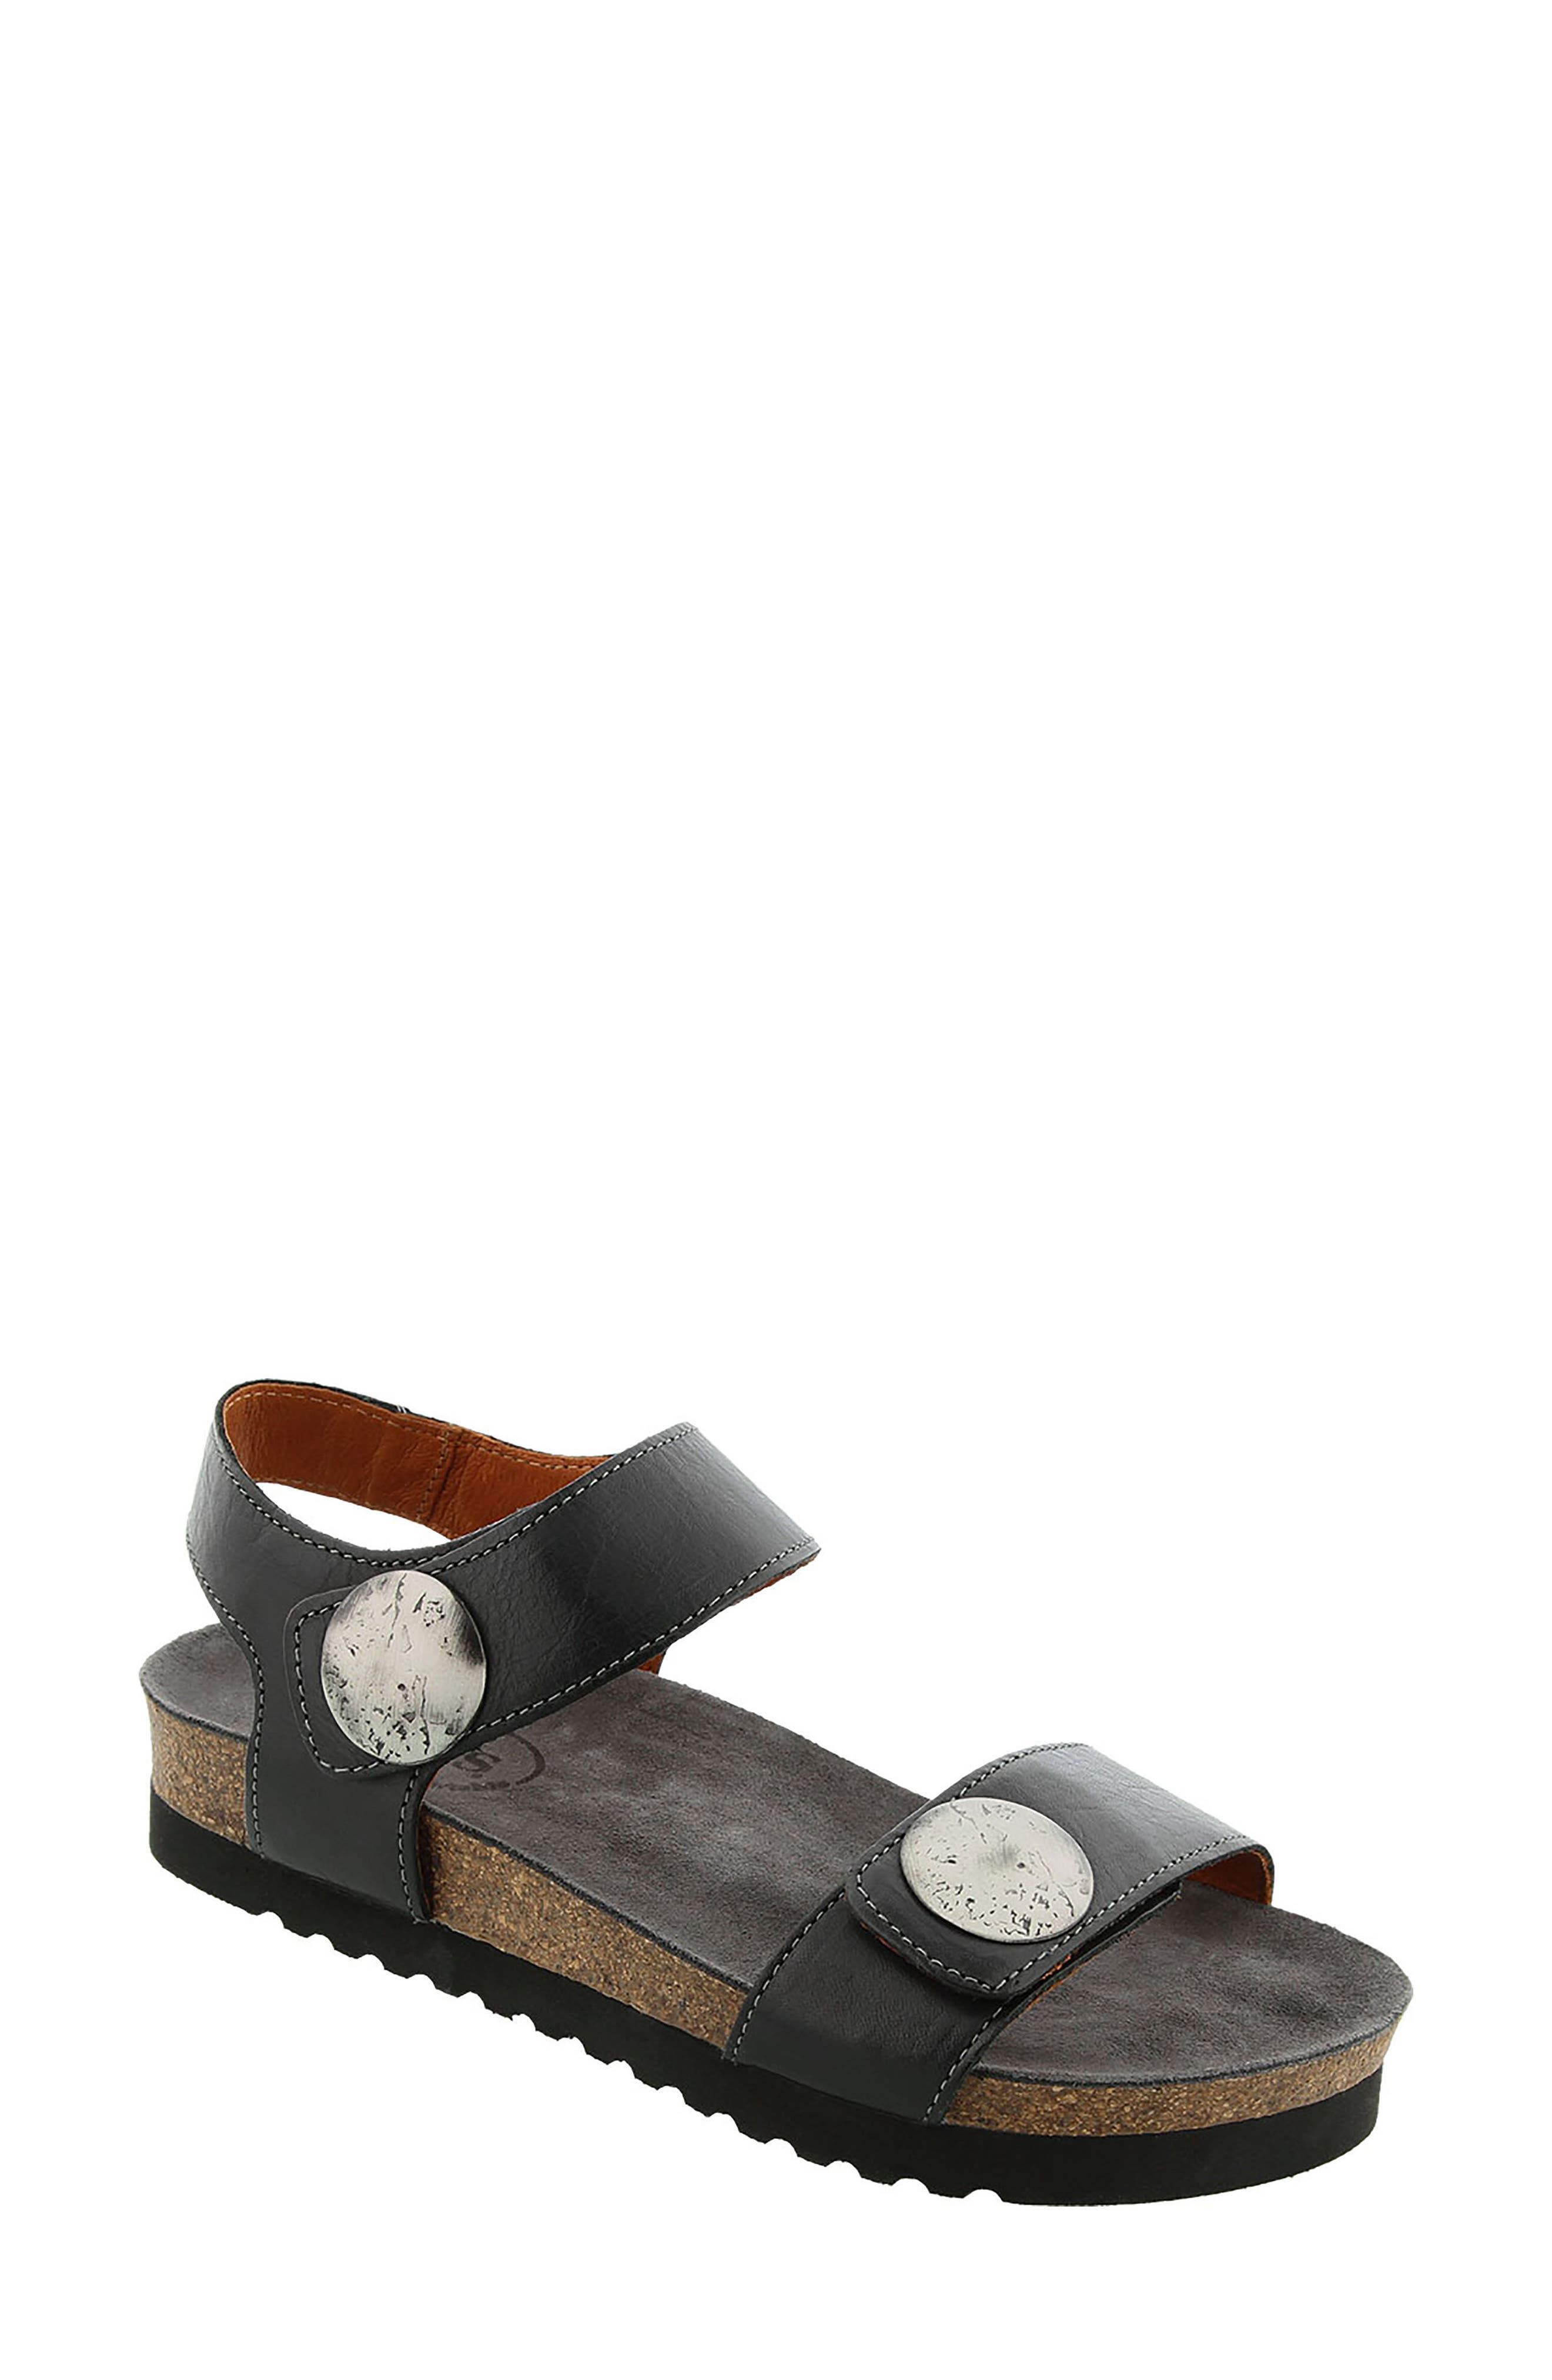 Luckie Sandal,                         Main,                         color,